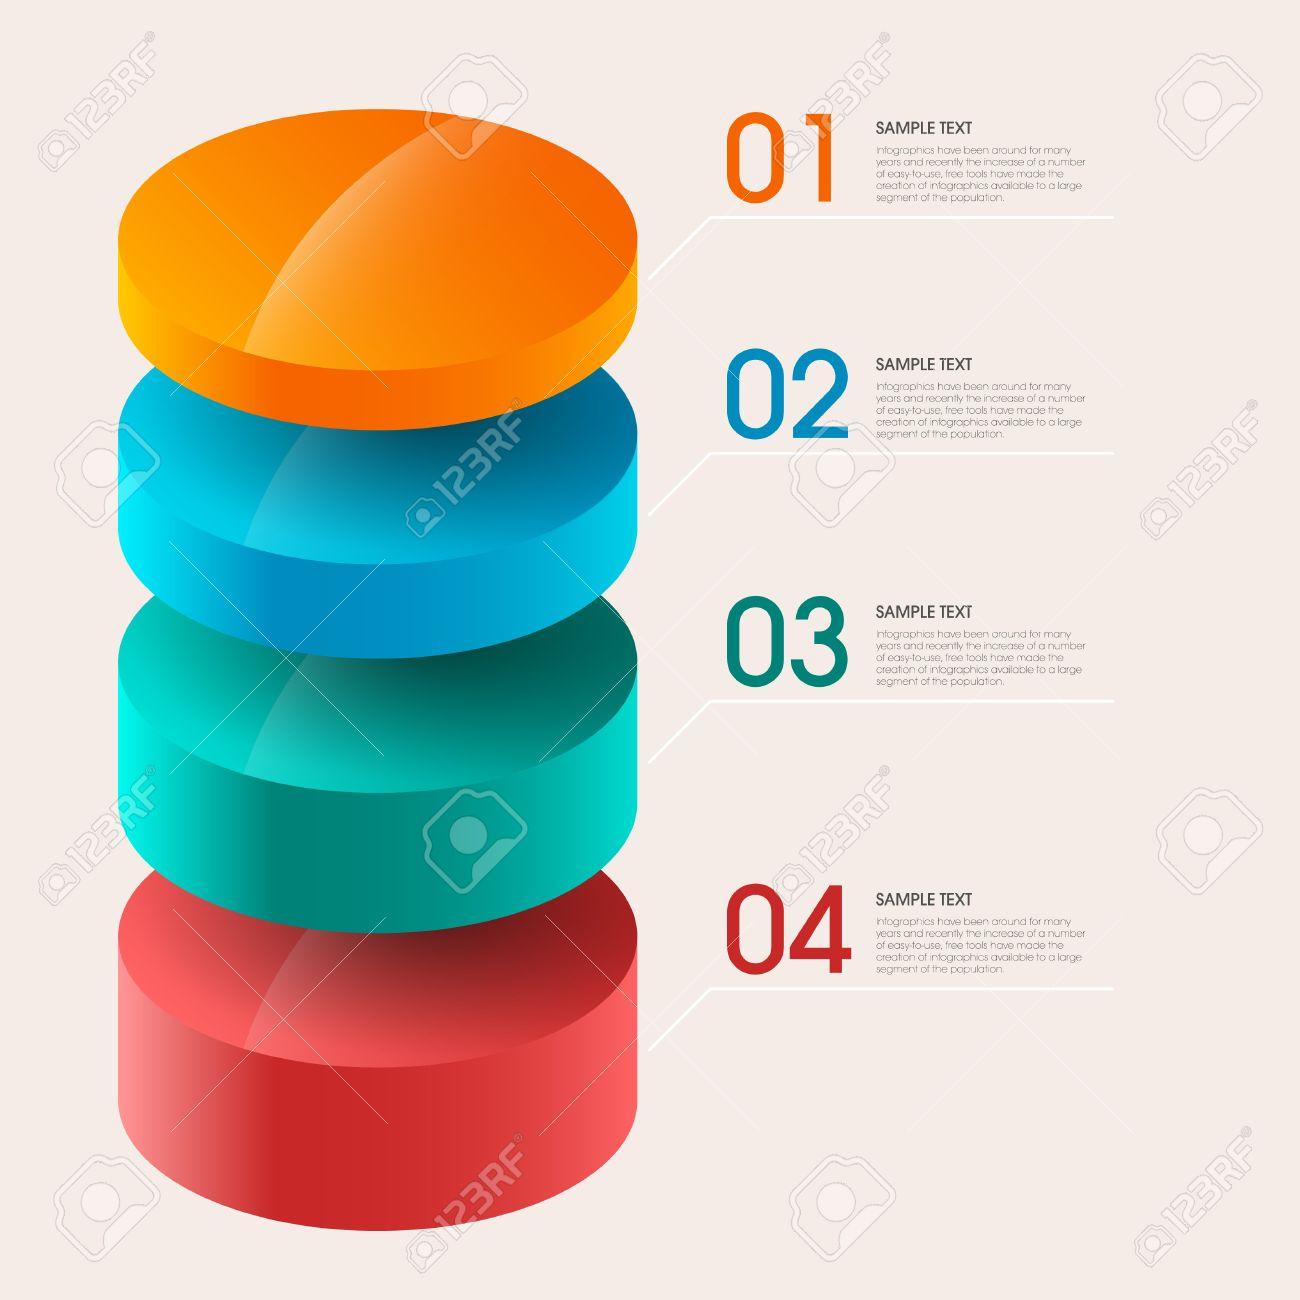 3d step label (pie chart) infographic design elements template